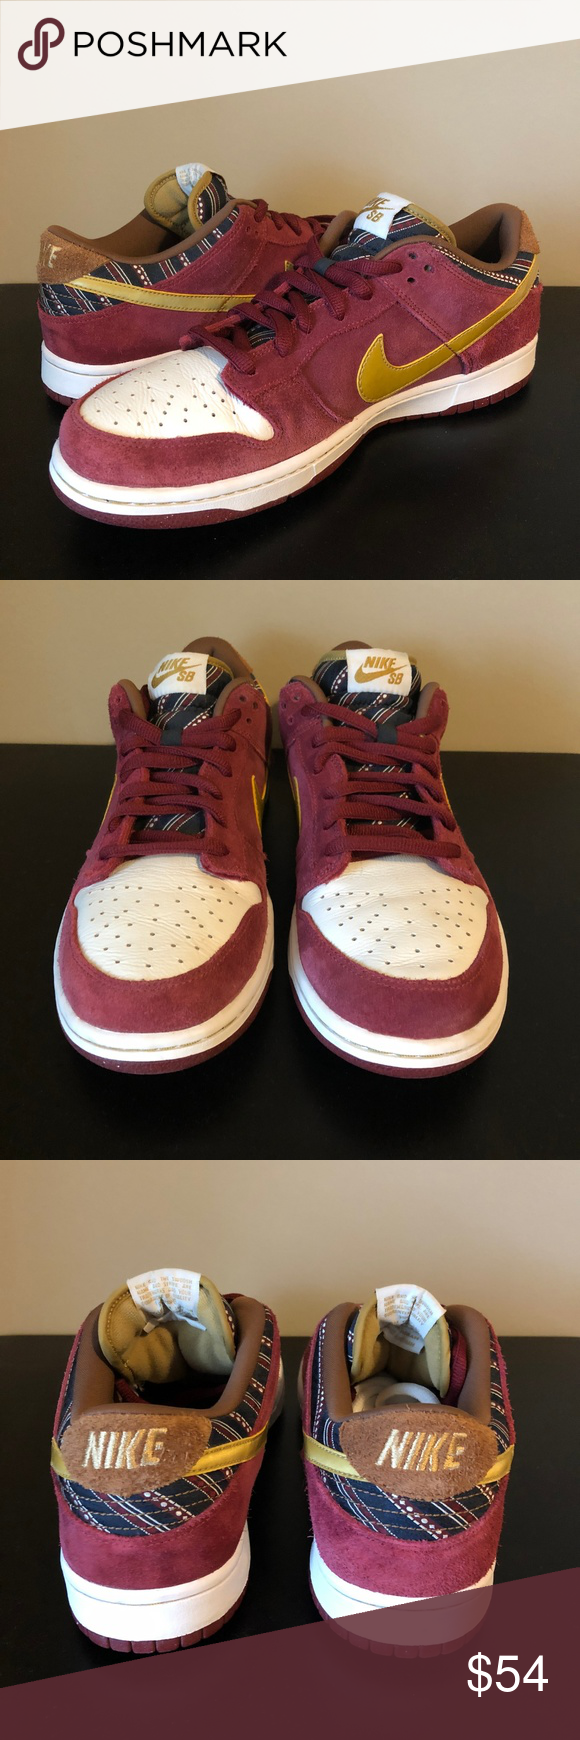 brand new 51e05 ad06b Mens Nike Dunk Low SB Anchorman